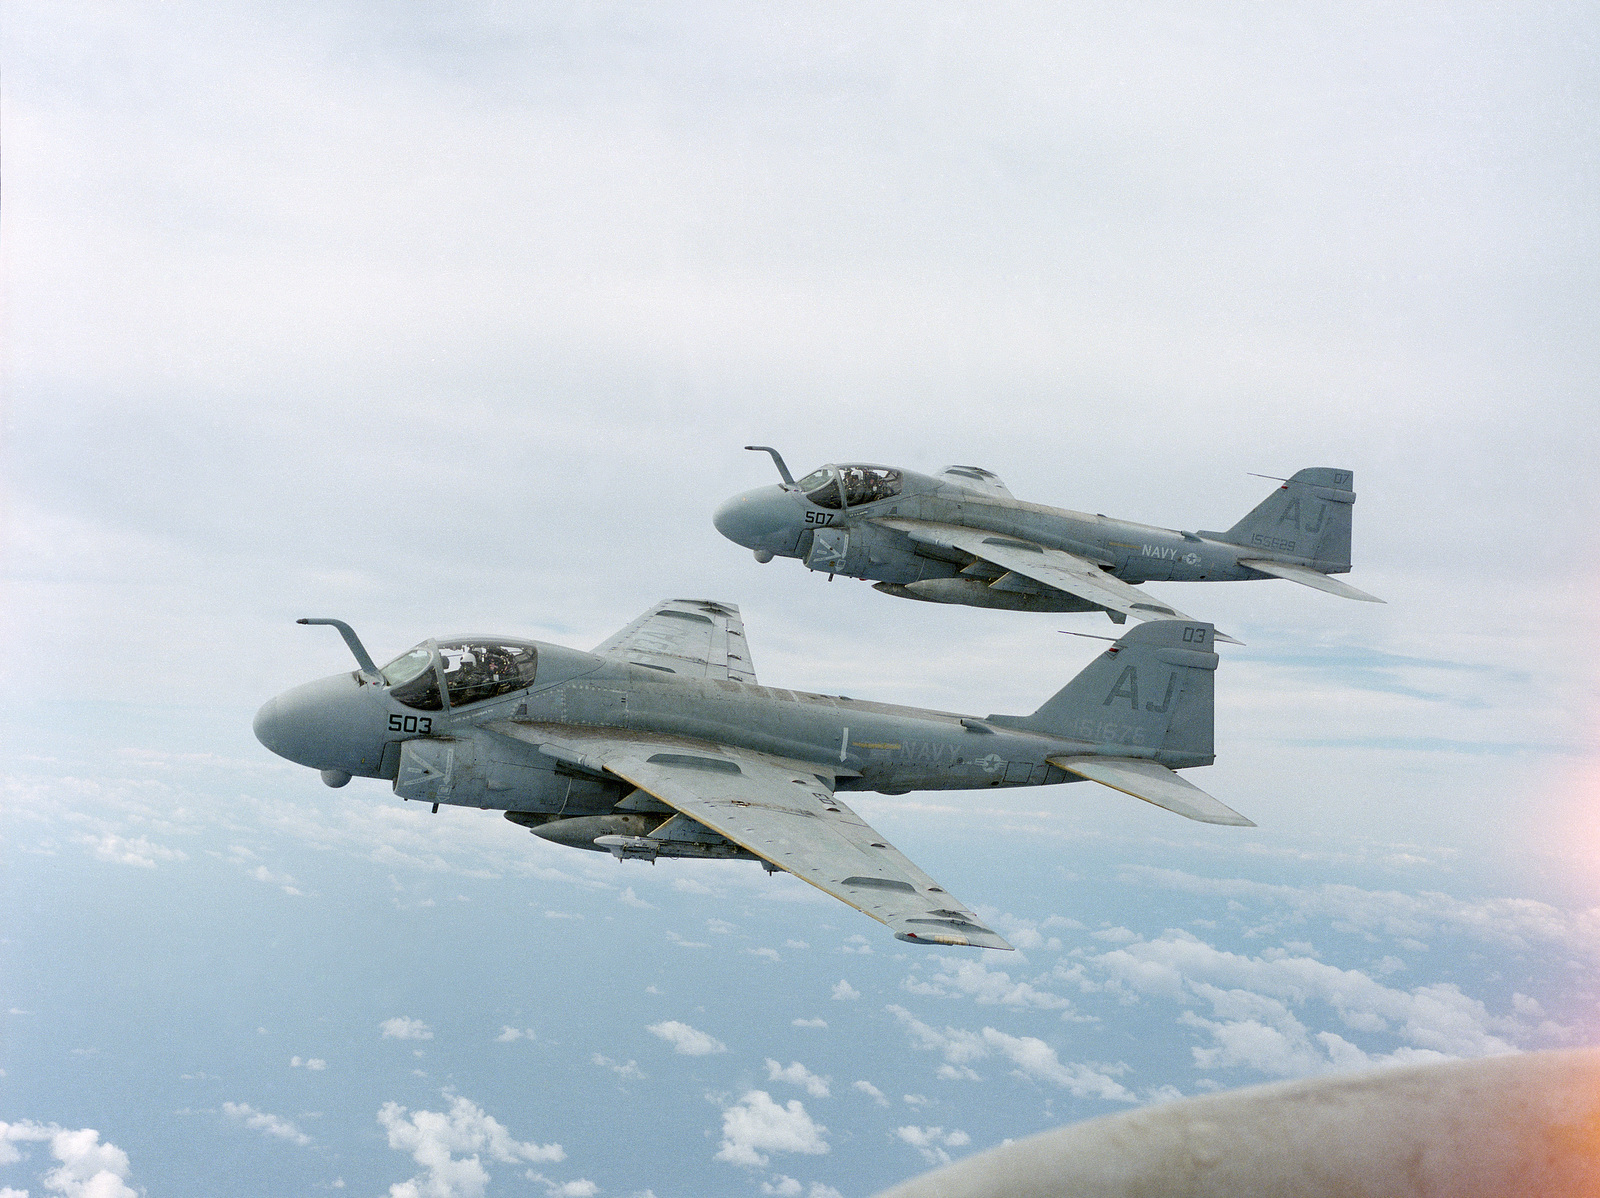 An air to air left side view of two Attack Squadron 35 (VA-35) (VA-35) A-6E Intruder aircraft